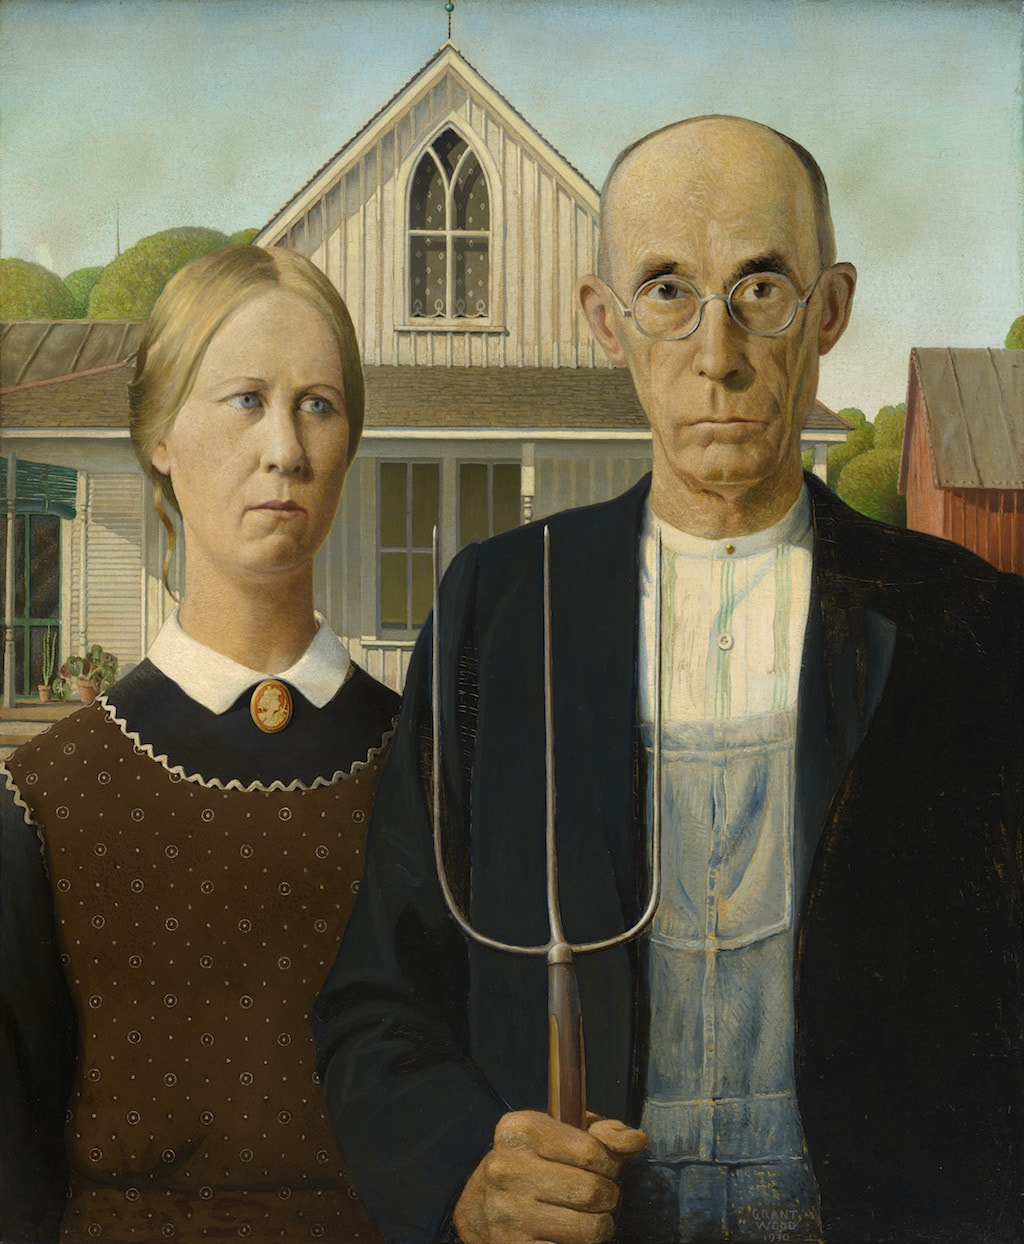 Grant Wood, <em>American Gothic</em>, 1930. © Figge Art Museum, successors to the Estate of Nan Wood Graham/Licensed by VAGA, New York, NY. Photograph courtesy of Art Institute of Chicago/Art Resource, NY